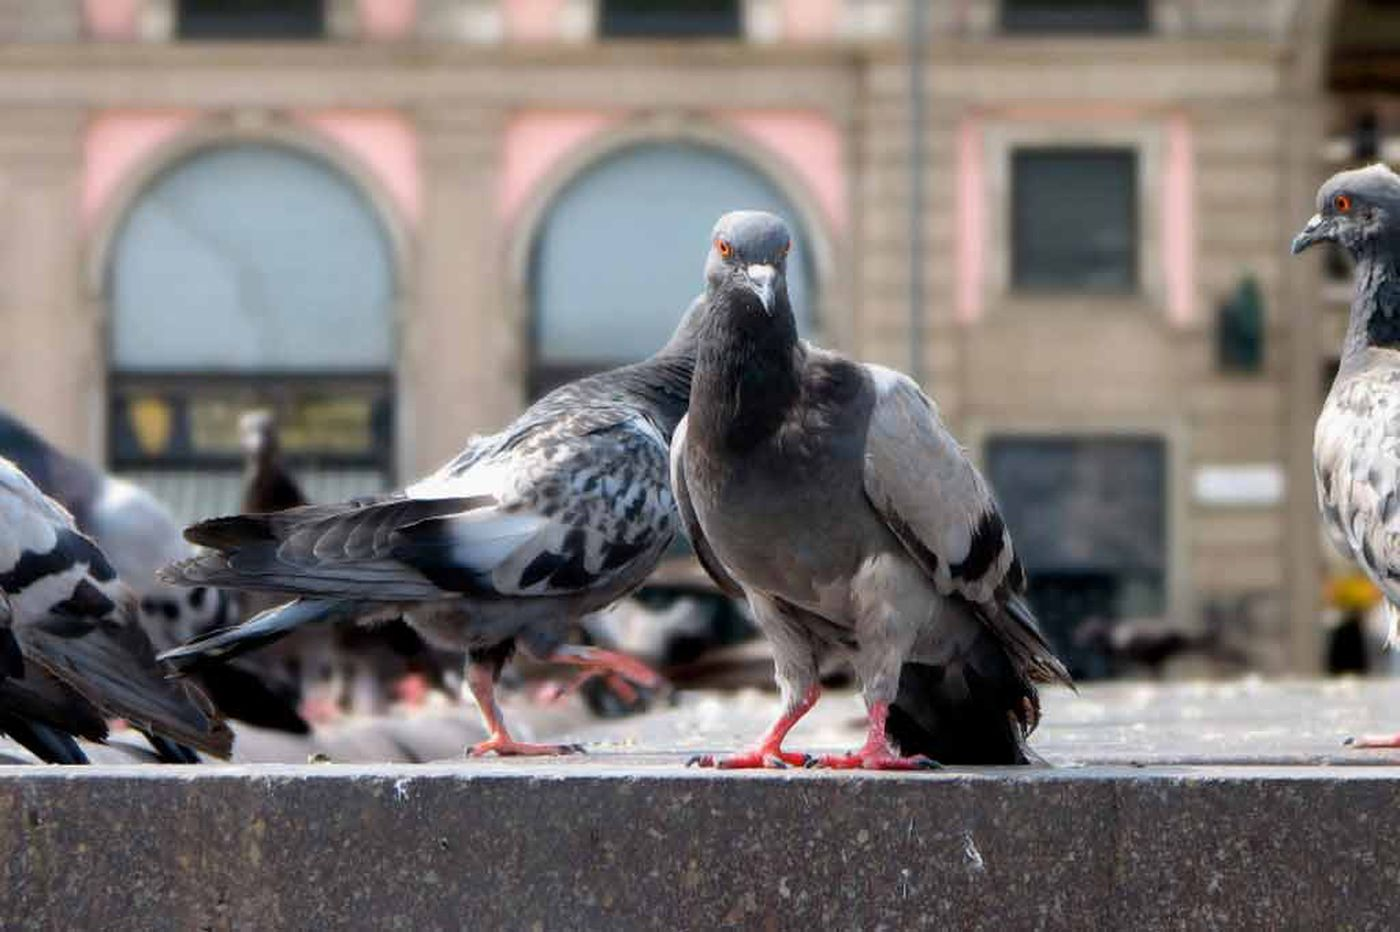 Can pigeons replace radiologists?